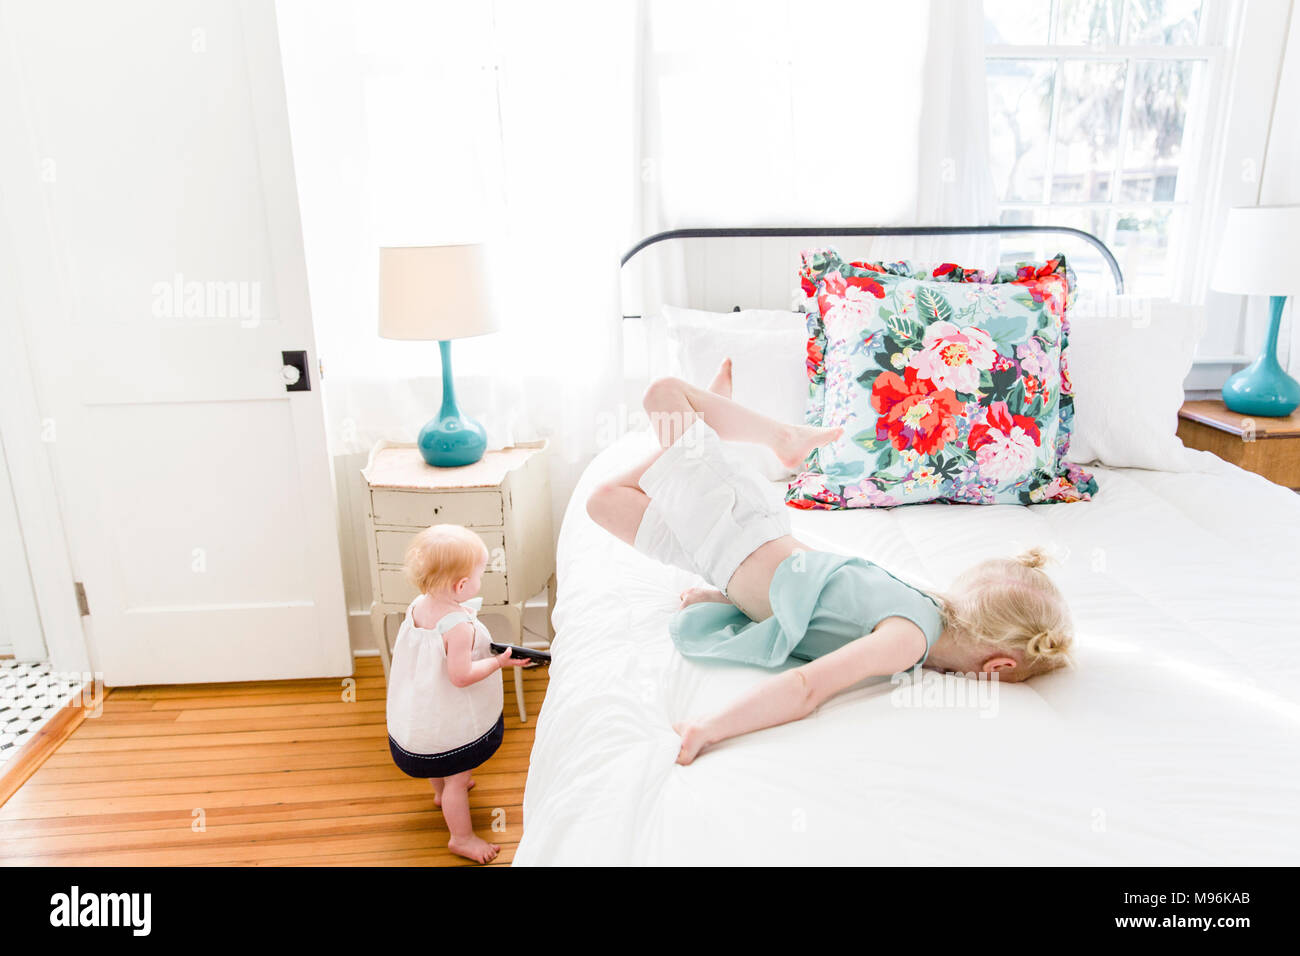 baby girls stockfotos baby girls bilder alamy. Black Bedroom Furniture Sets. Home Design Ideas